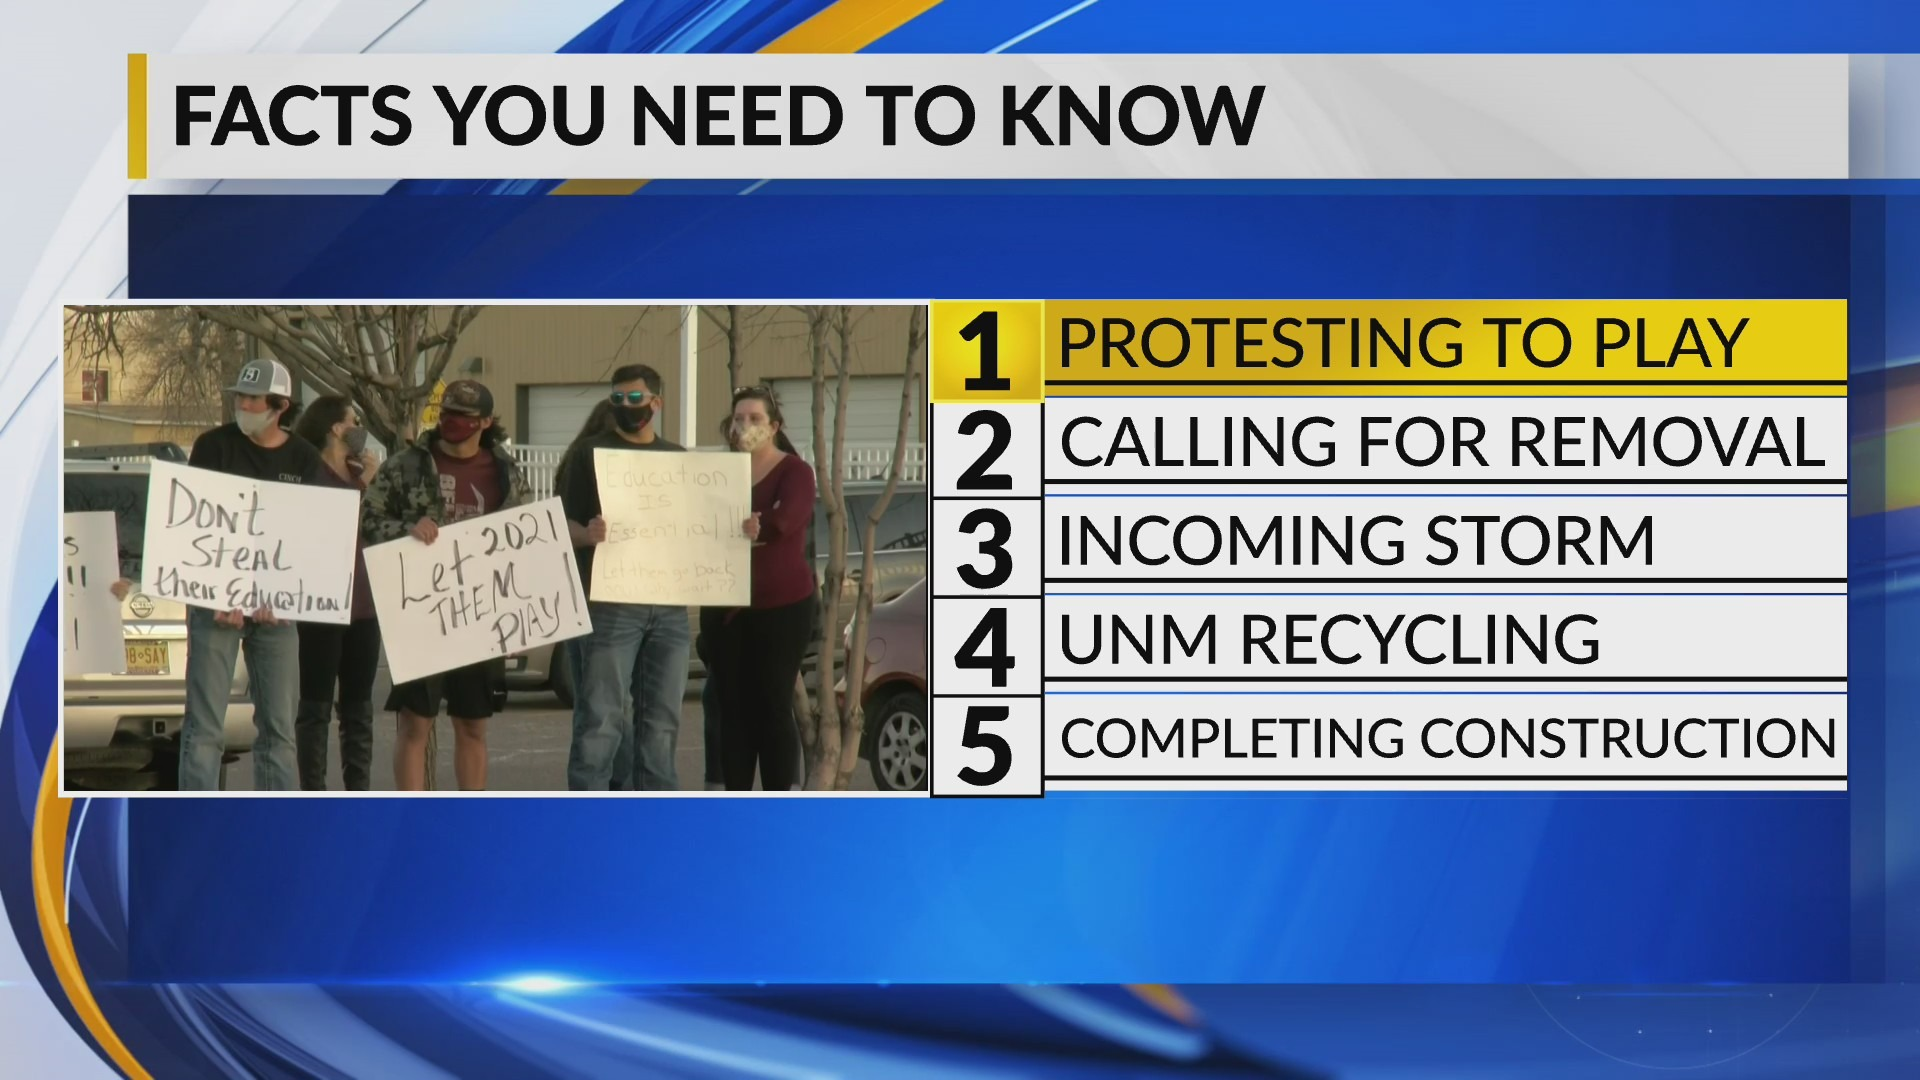 krqe.com - Allison Keys - KRQE Newsfeed: Protesting to play, Calling for removal, Incoming storm, UNM recycling, Completing construction